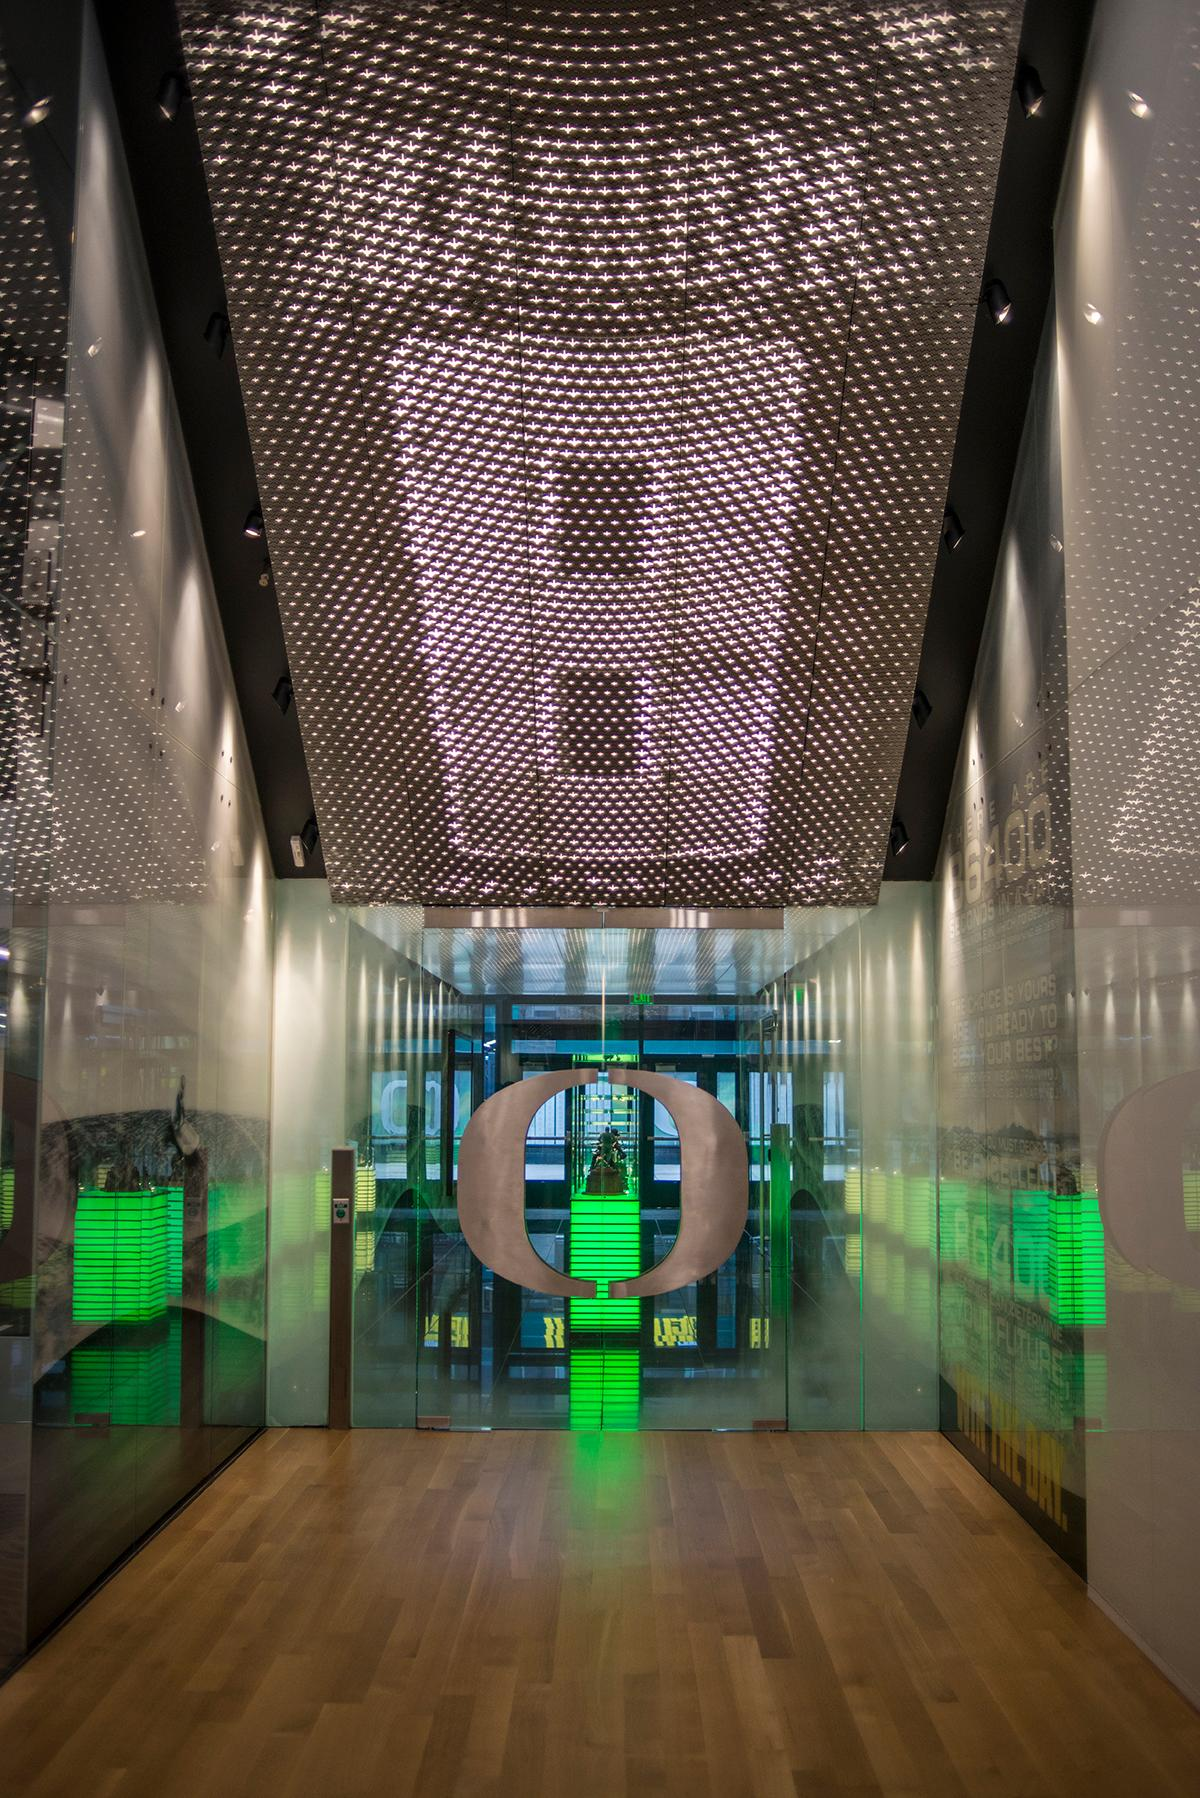 Several of the ceilings of the Mariota Sports Performance Center were designed to show an image when seen through a camera or smart phone. The Marcus Mariota Performance Center located next to Autzen Stadium was built using a private donation from Phil and Penny Knight estimated at $19 million. The performance center houses the recruiting center, armory shop, space saver units which hold all the gear for football, baseball, and lacrosse, as well as full weight room, nap room, and many other accommodations.